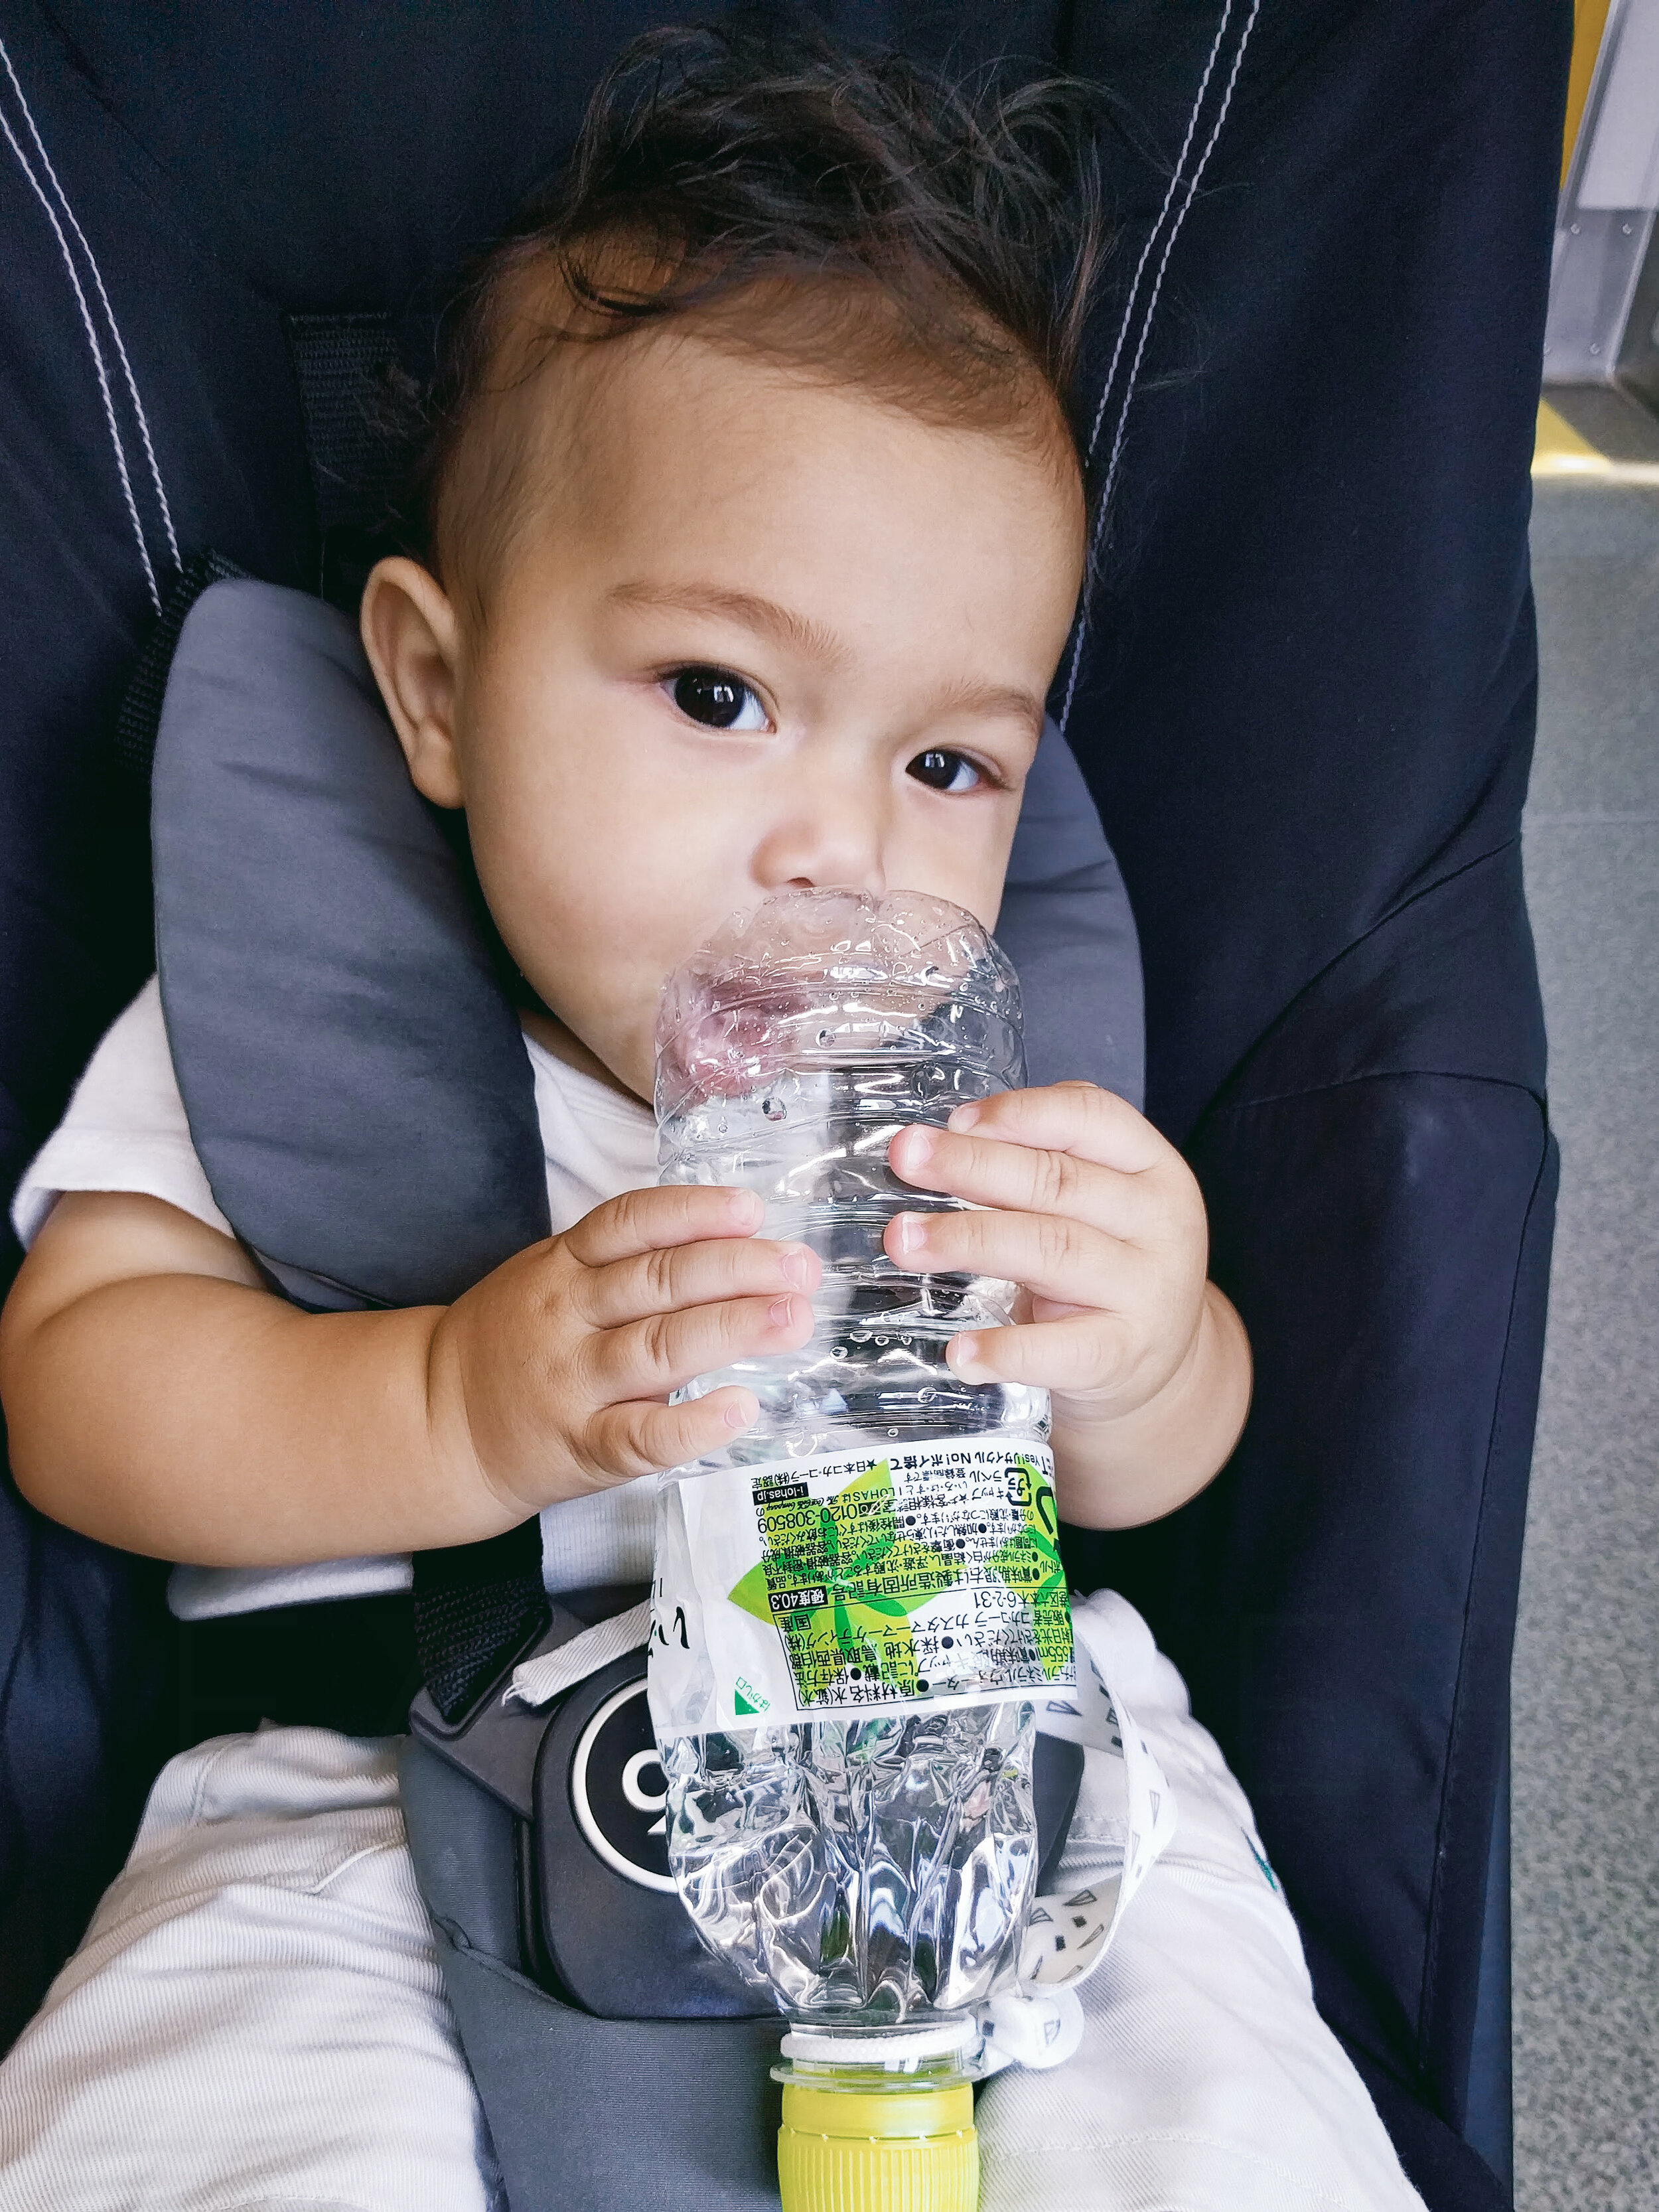 FAMILEE Travel_Asia_JAPAN_baby knawing on water bottle in stroller.jpg